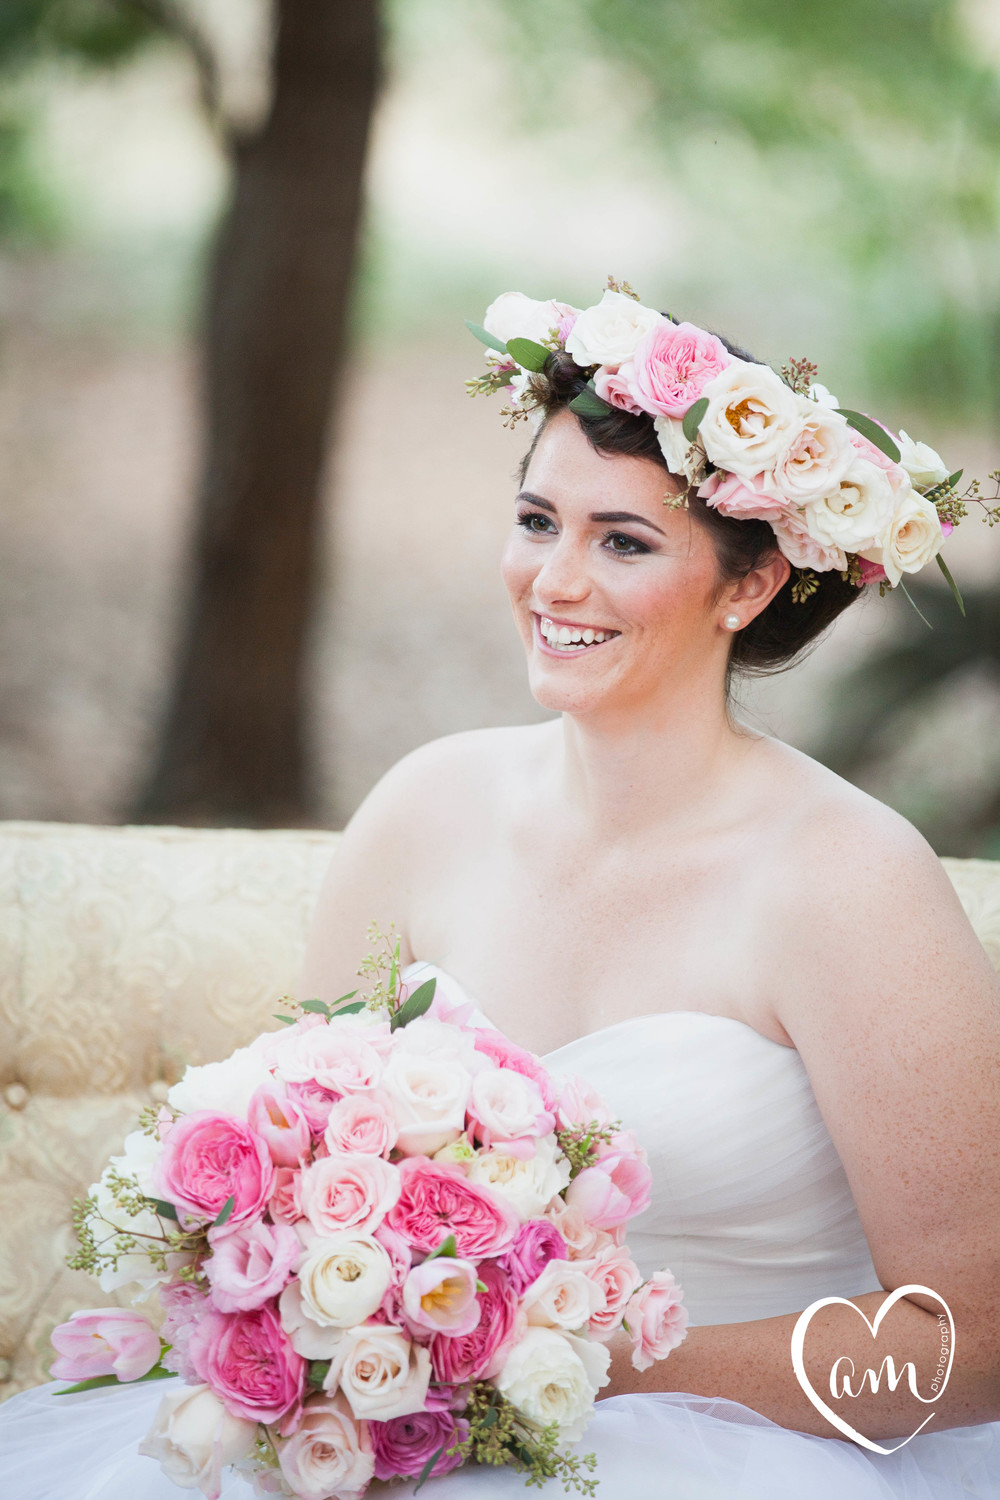 Floral Crown photographed by Florida Destination Wedding Photographer